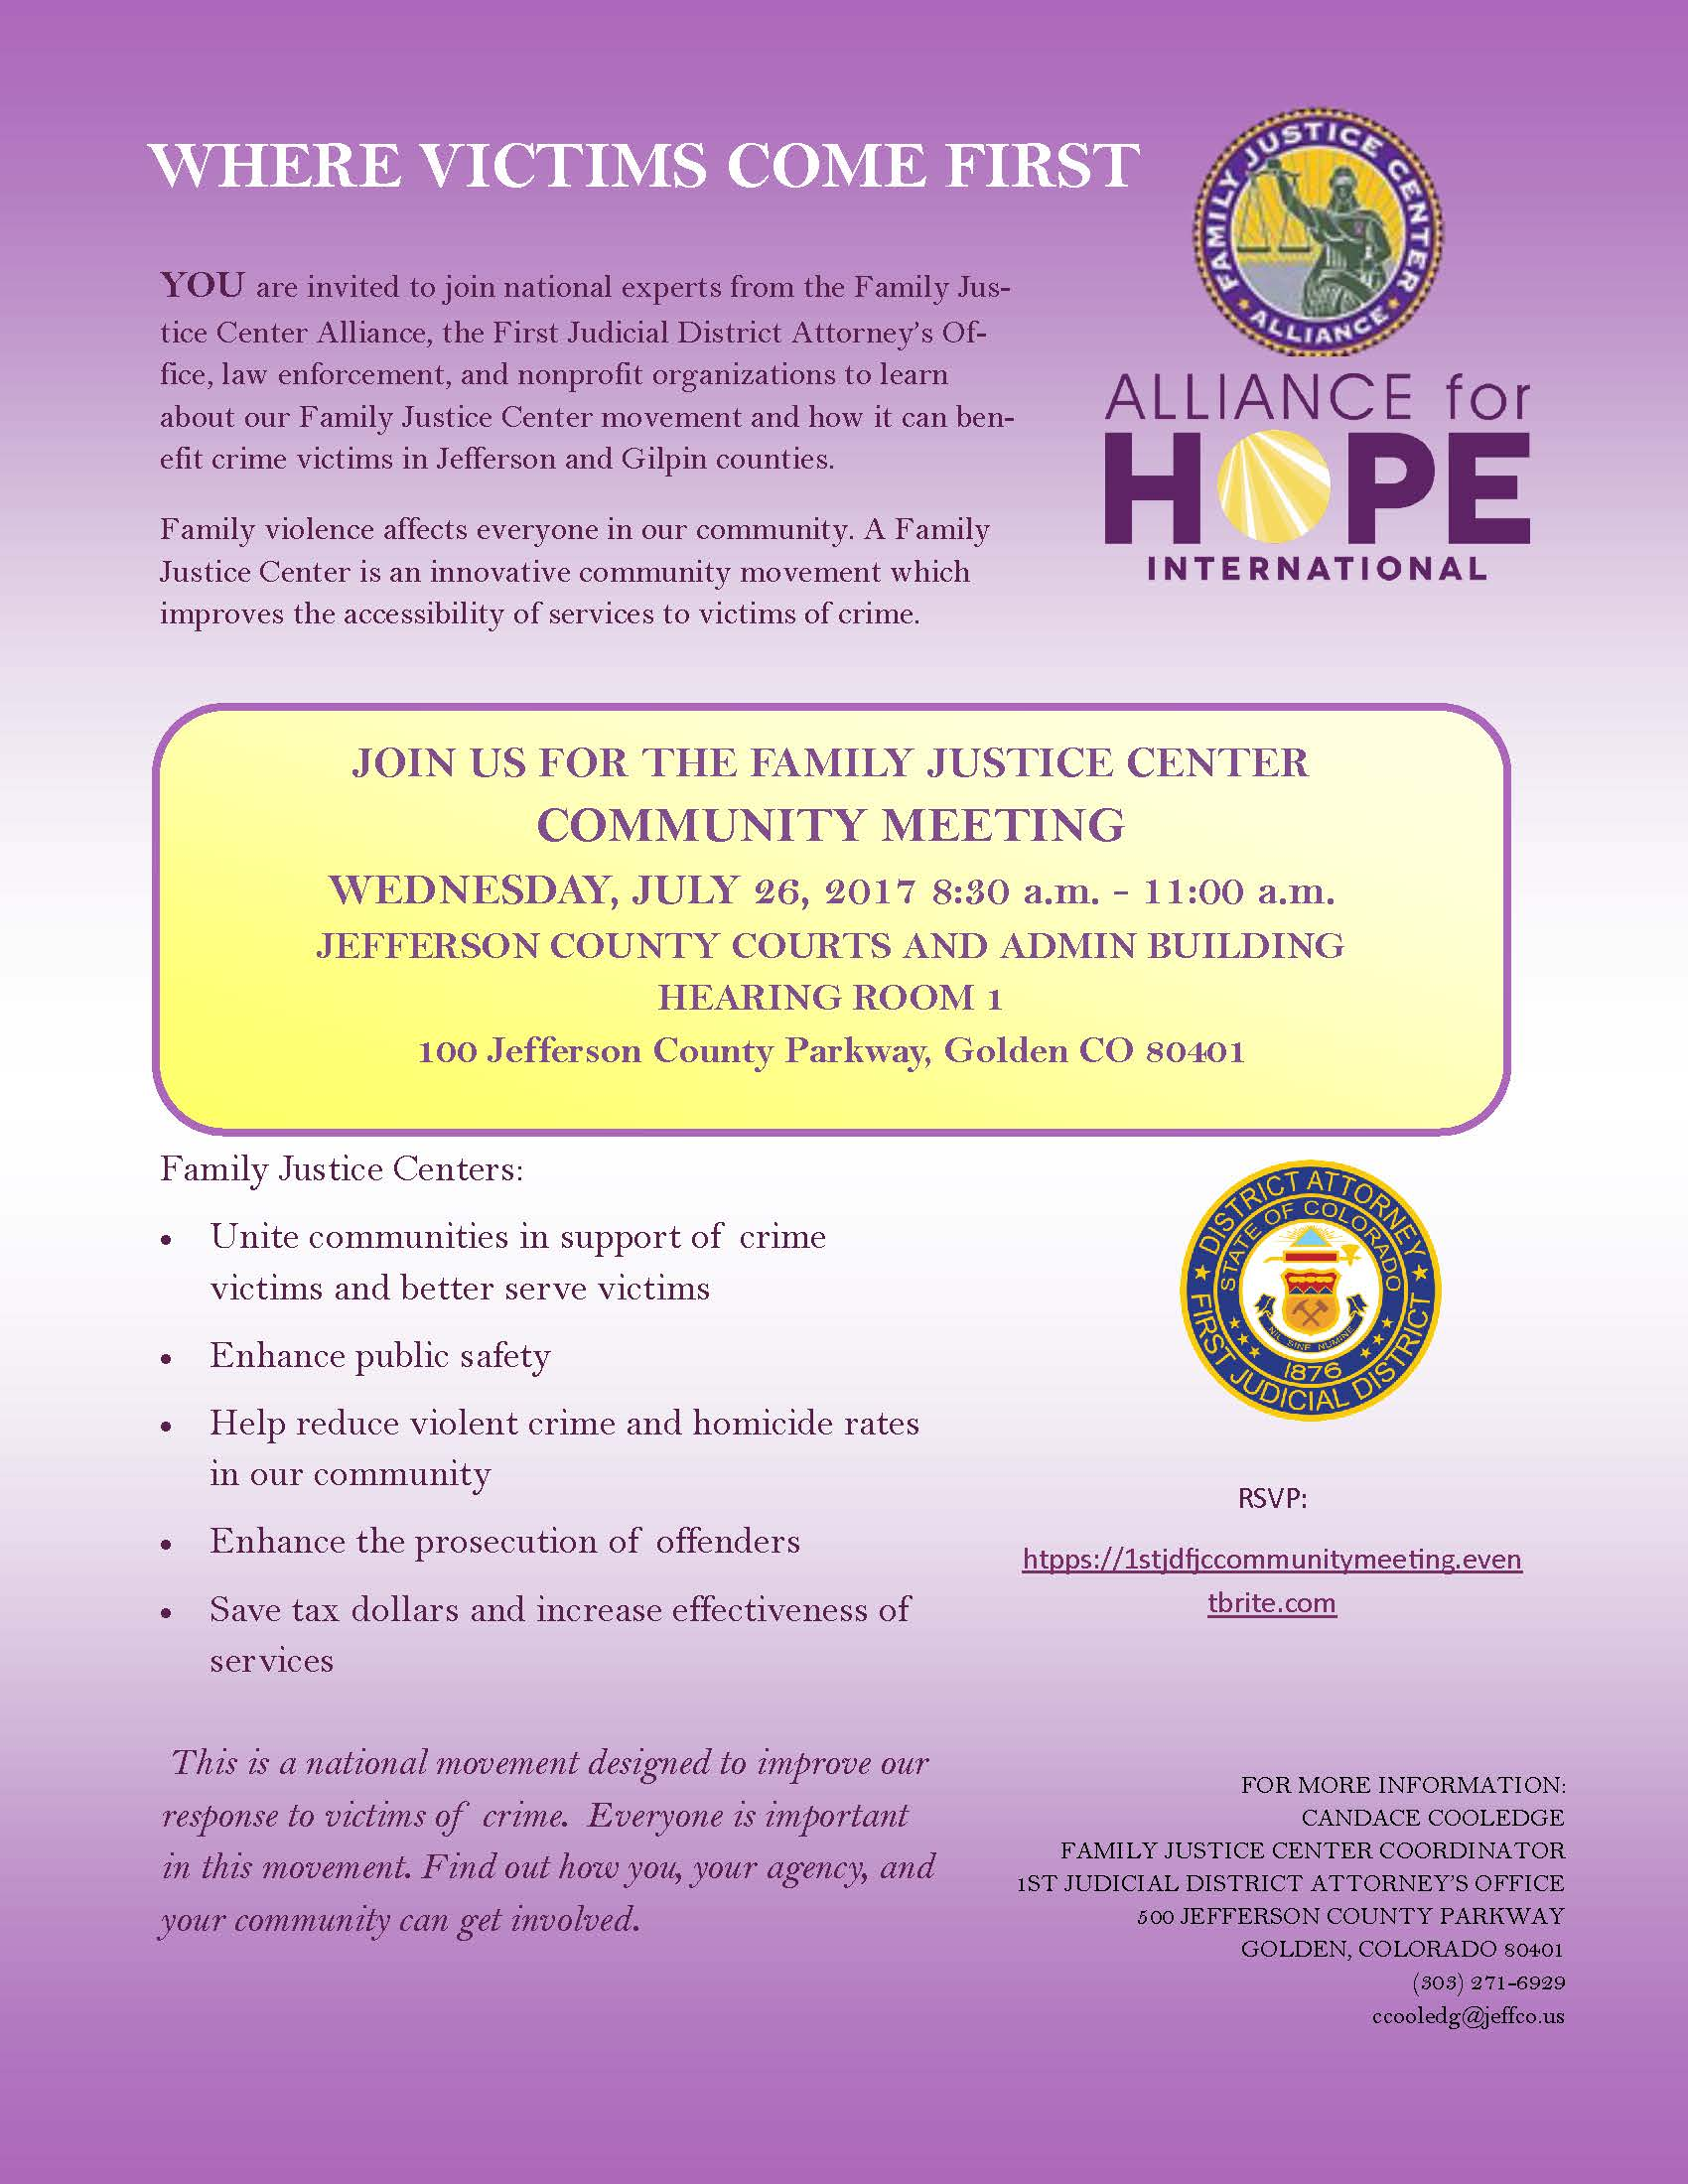 Community Meeting Invitation Flyer